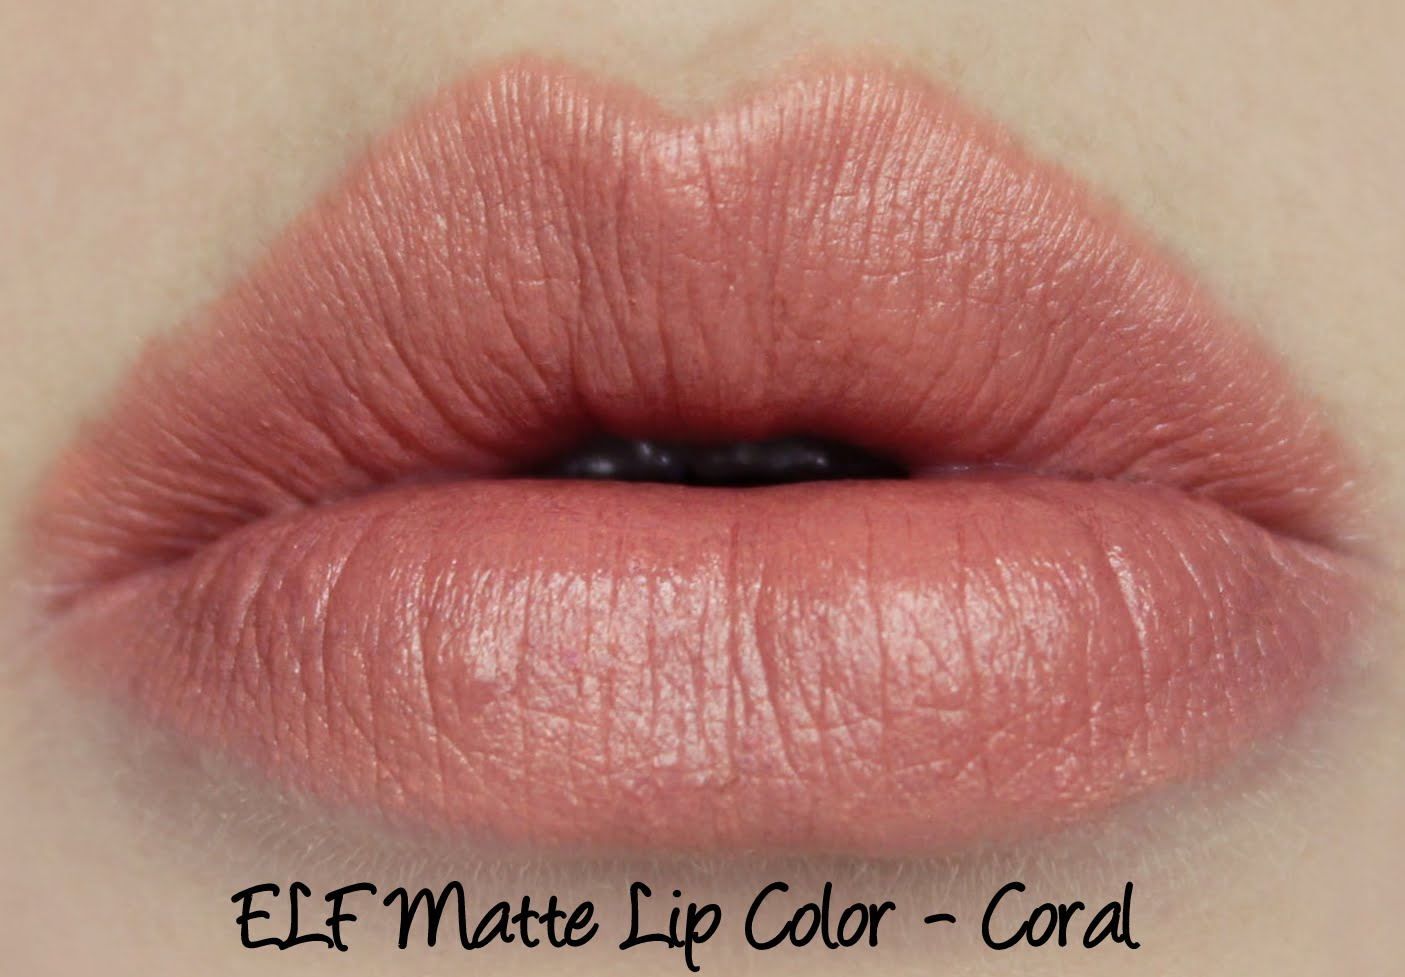 ELF Matte Lip Color - Coral Swatches & Review